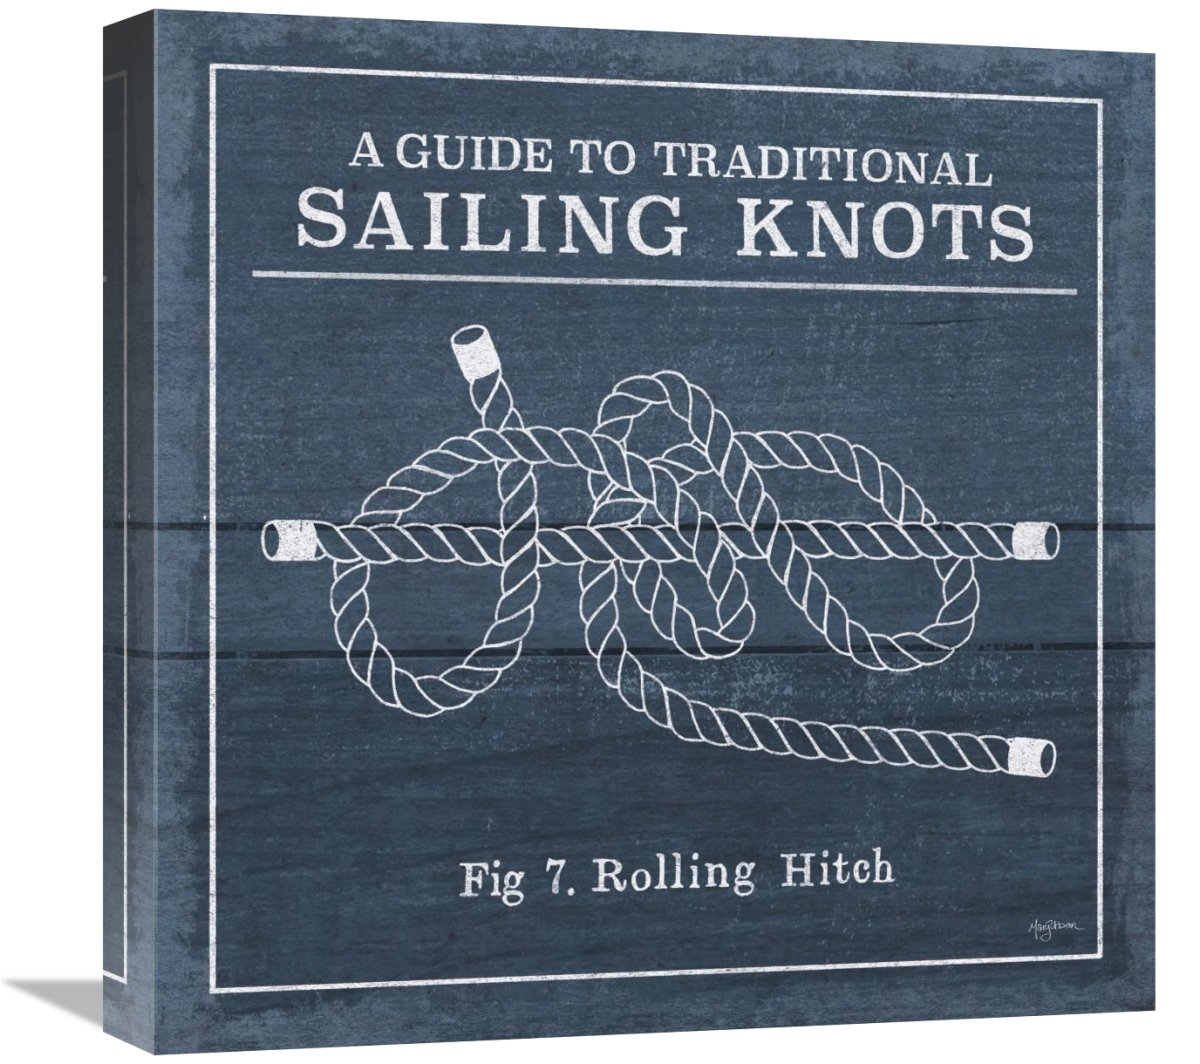 Global Gallery Mary Urban Vintage Sailing Knots VIII Giclee Stretched Canvas Artwork 18 x 18